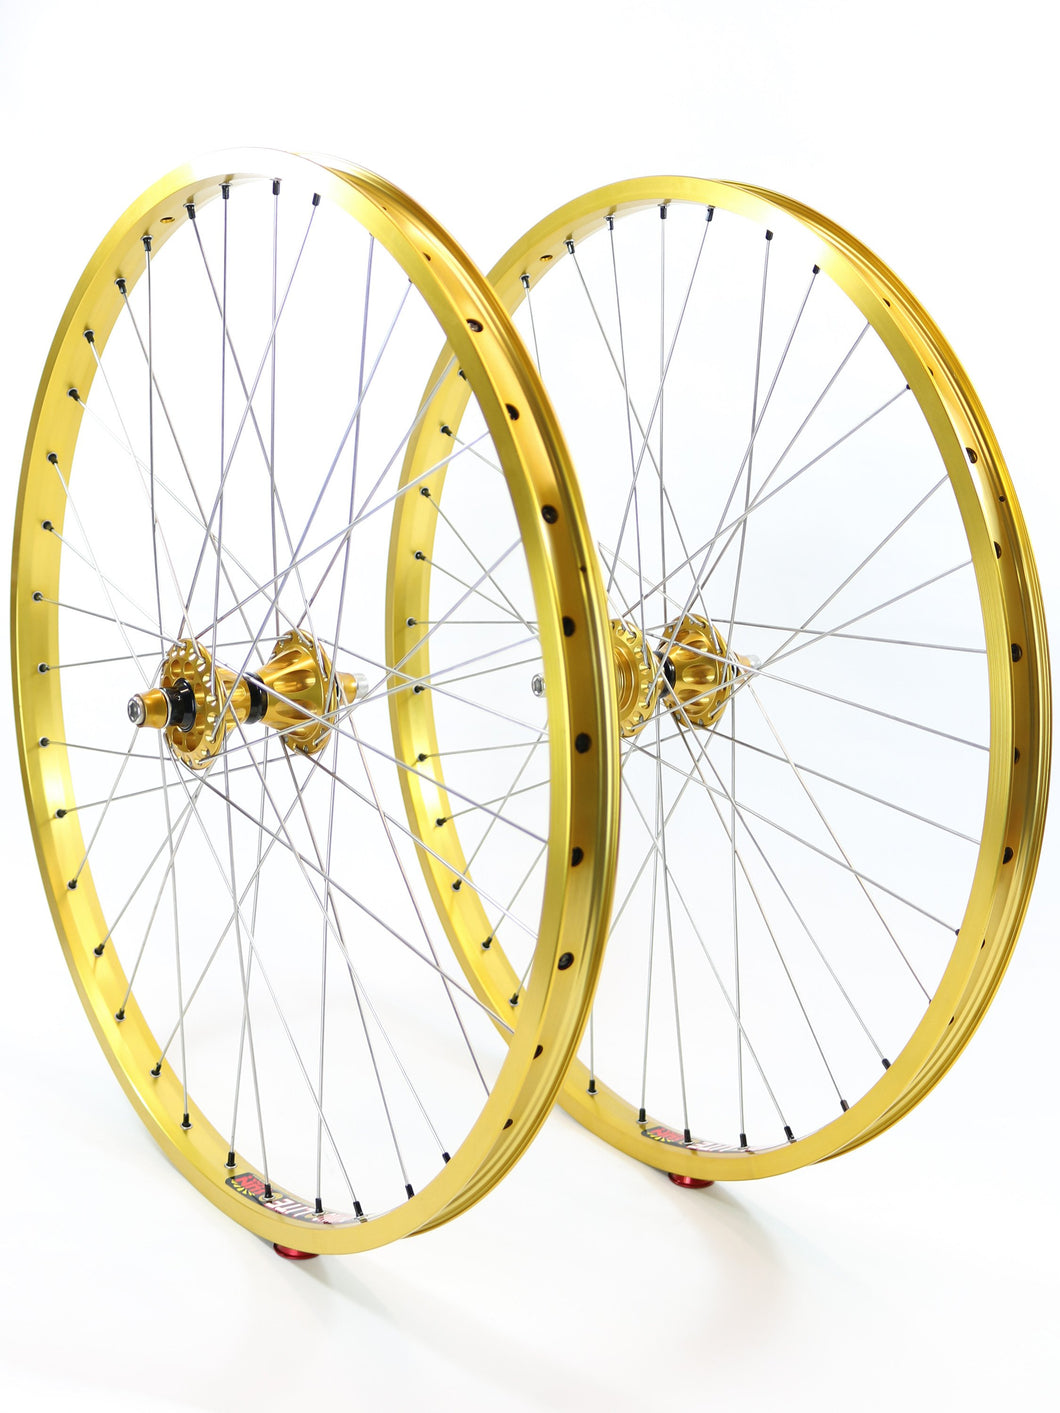 Wheelset - Technique Hub & Sun Rim (26